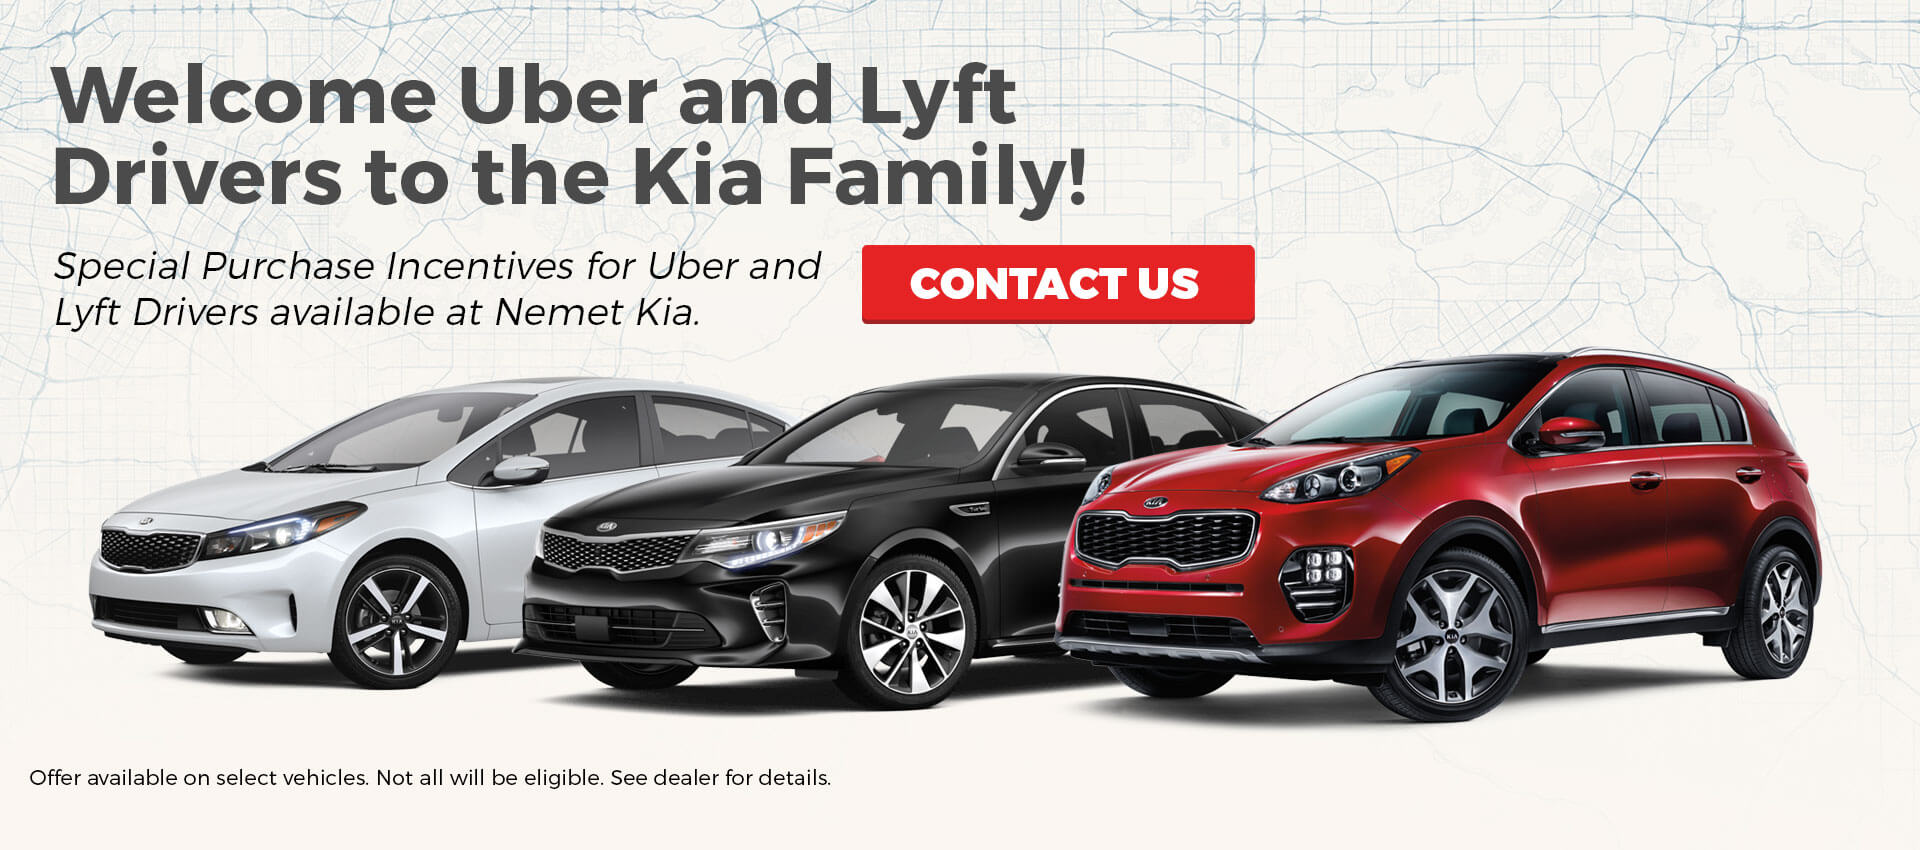 specials monthly ontario kia bessada list special deals pickering promotions auto and